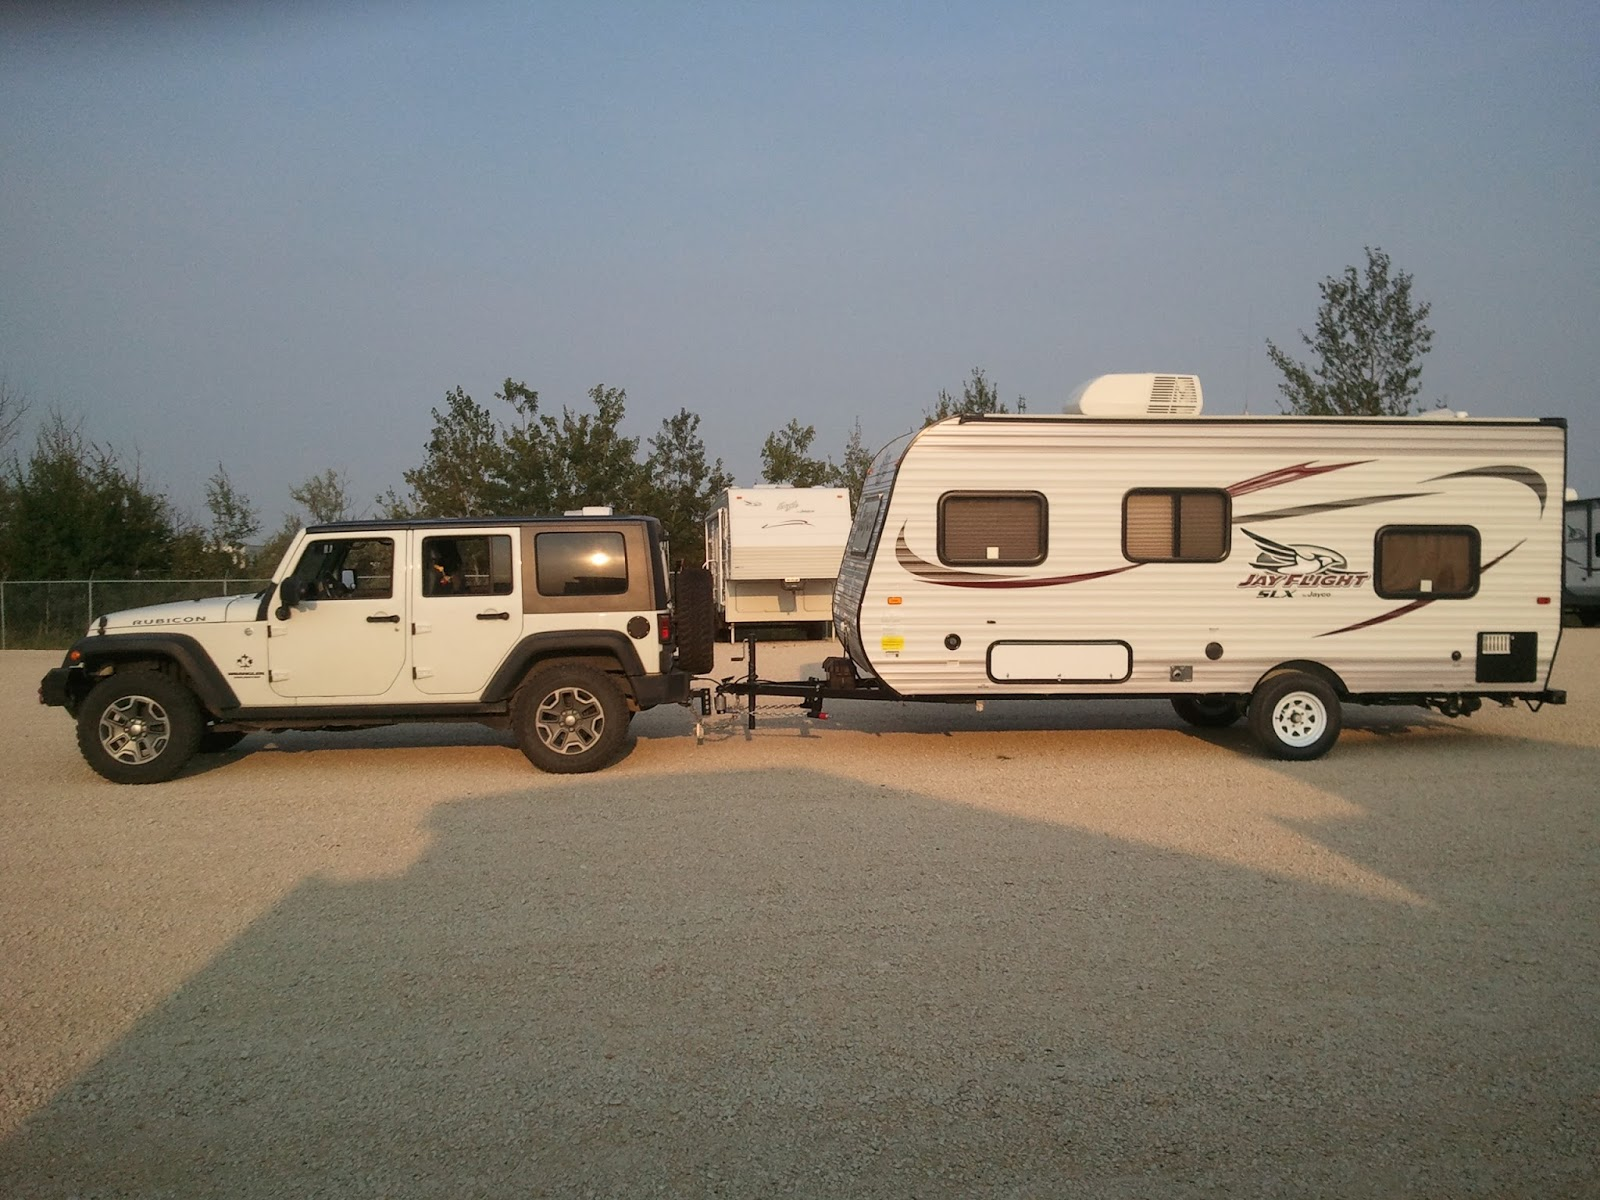 Jeep Wrangler Unlimited Towing Travel Trailer